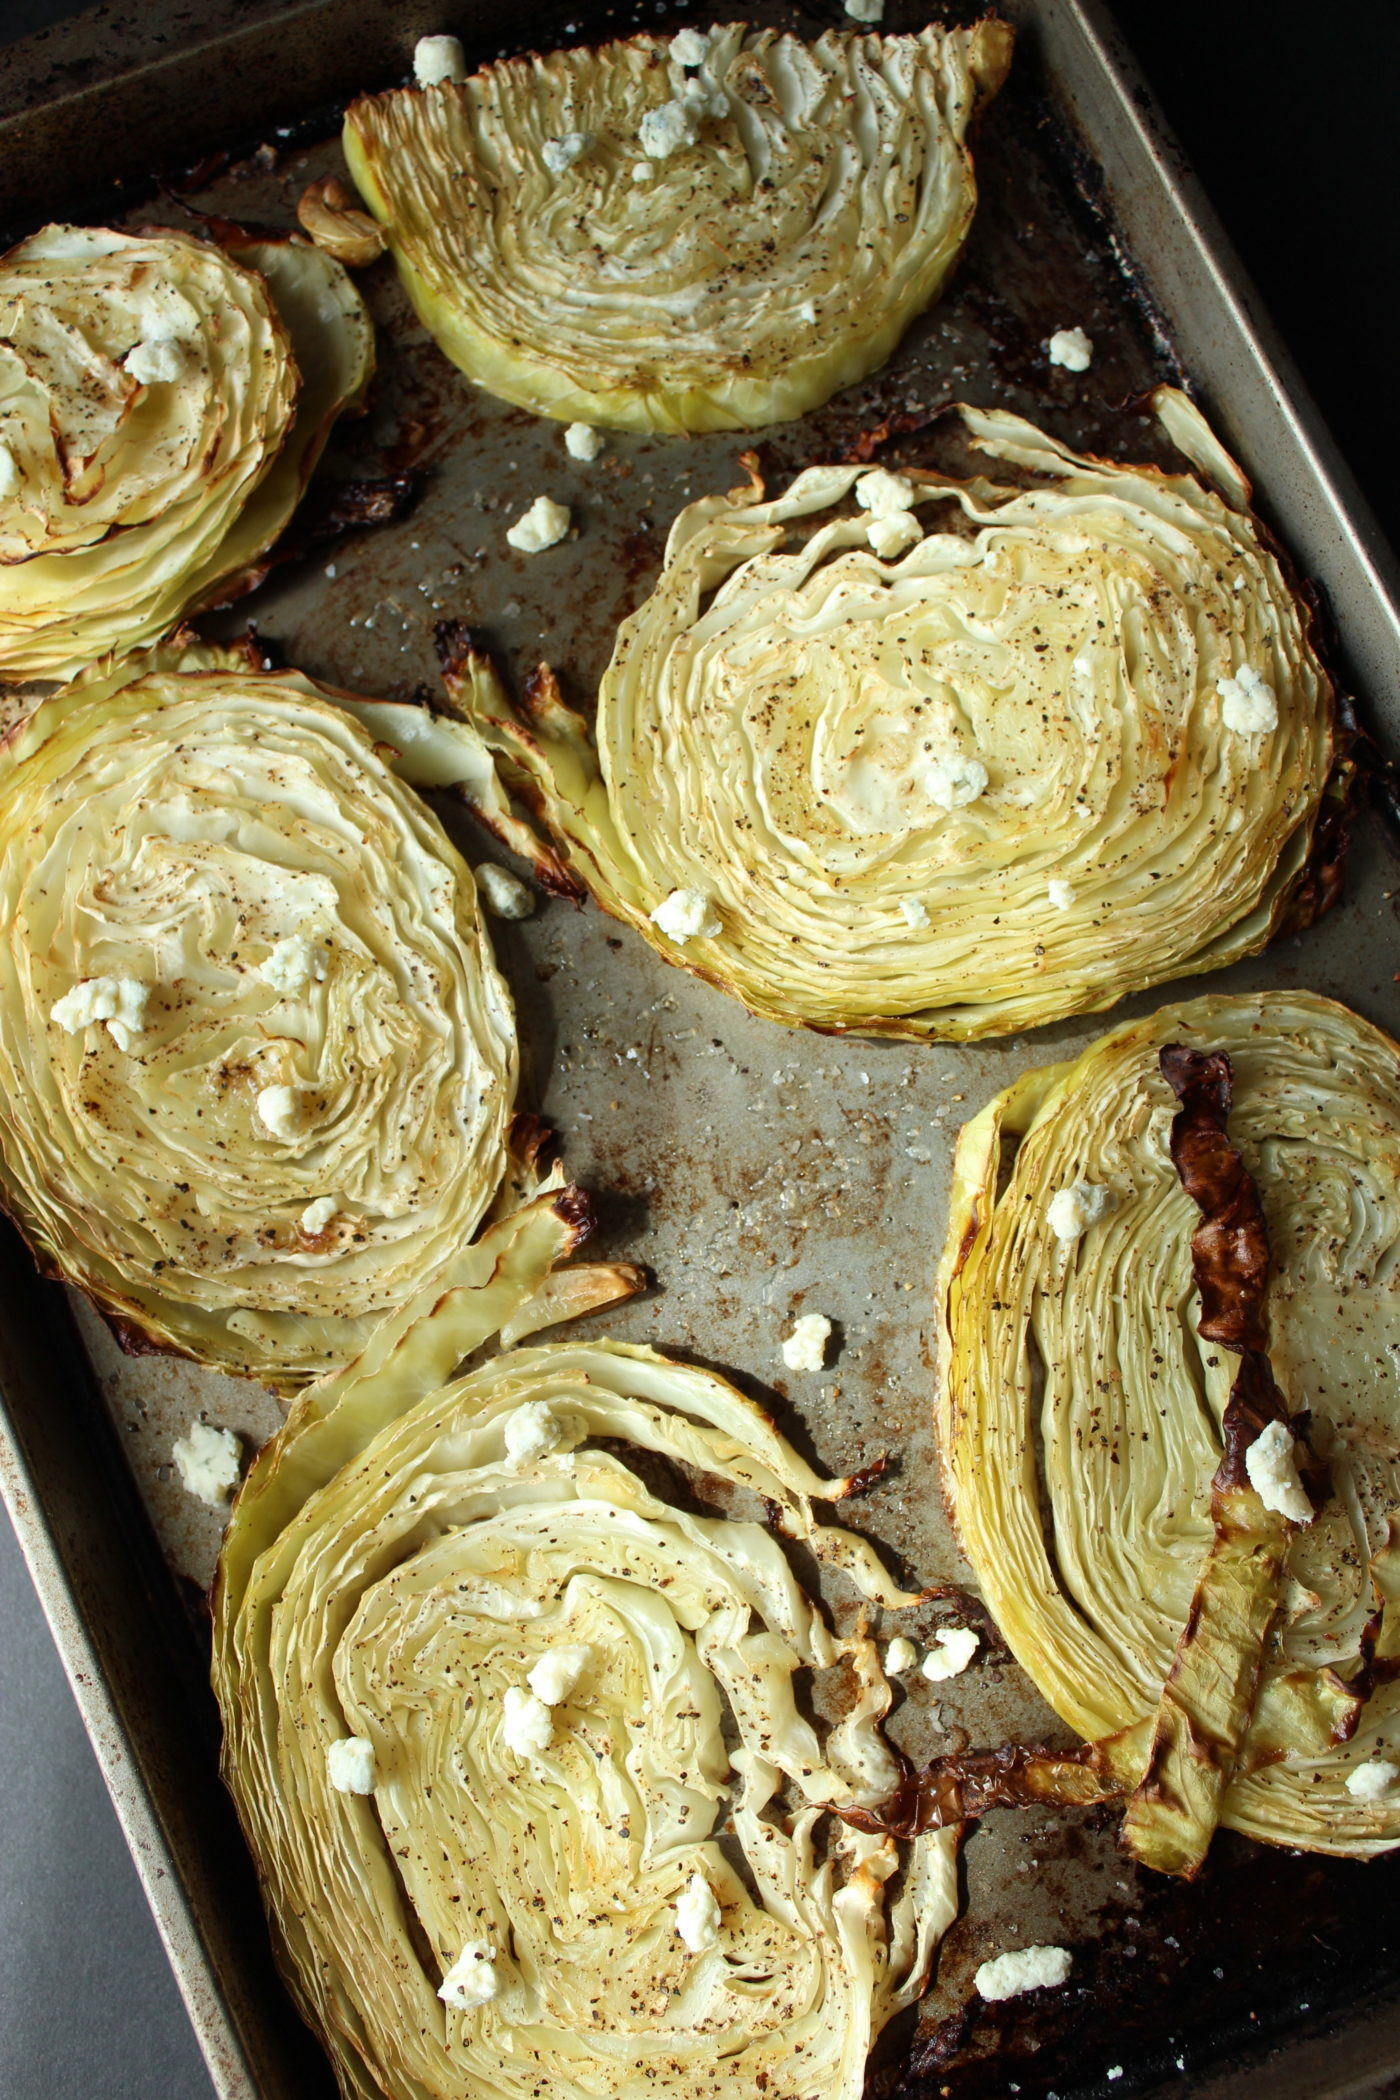 Try roasted cabbage if you need a simple veggie side dish.